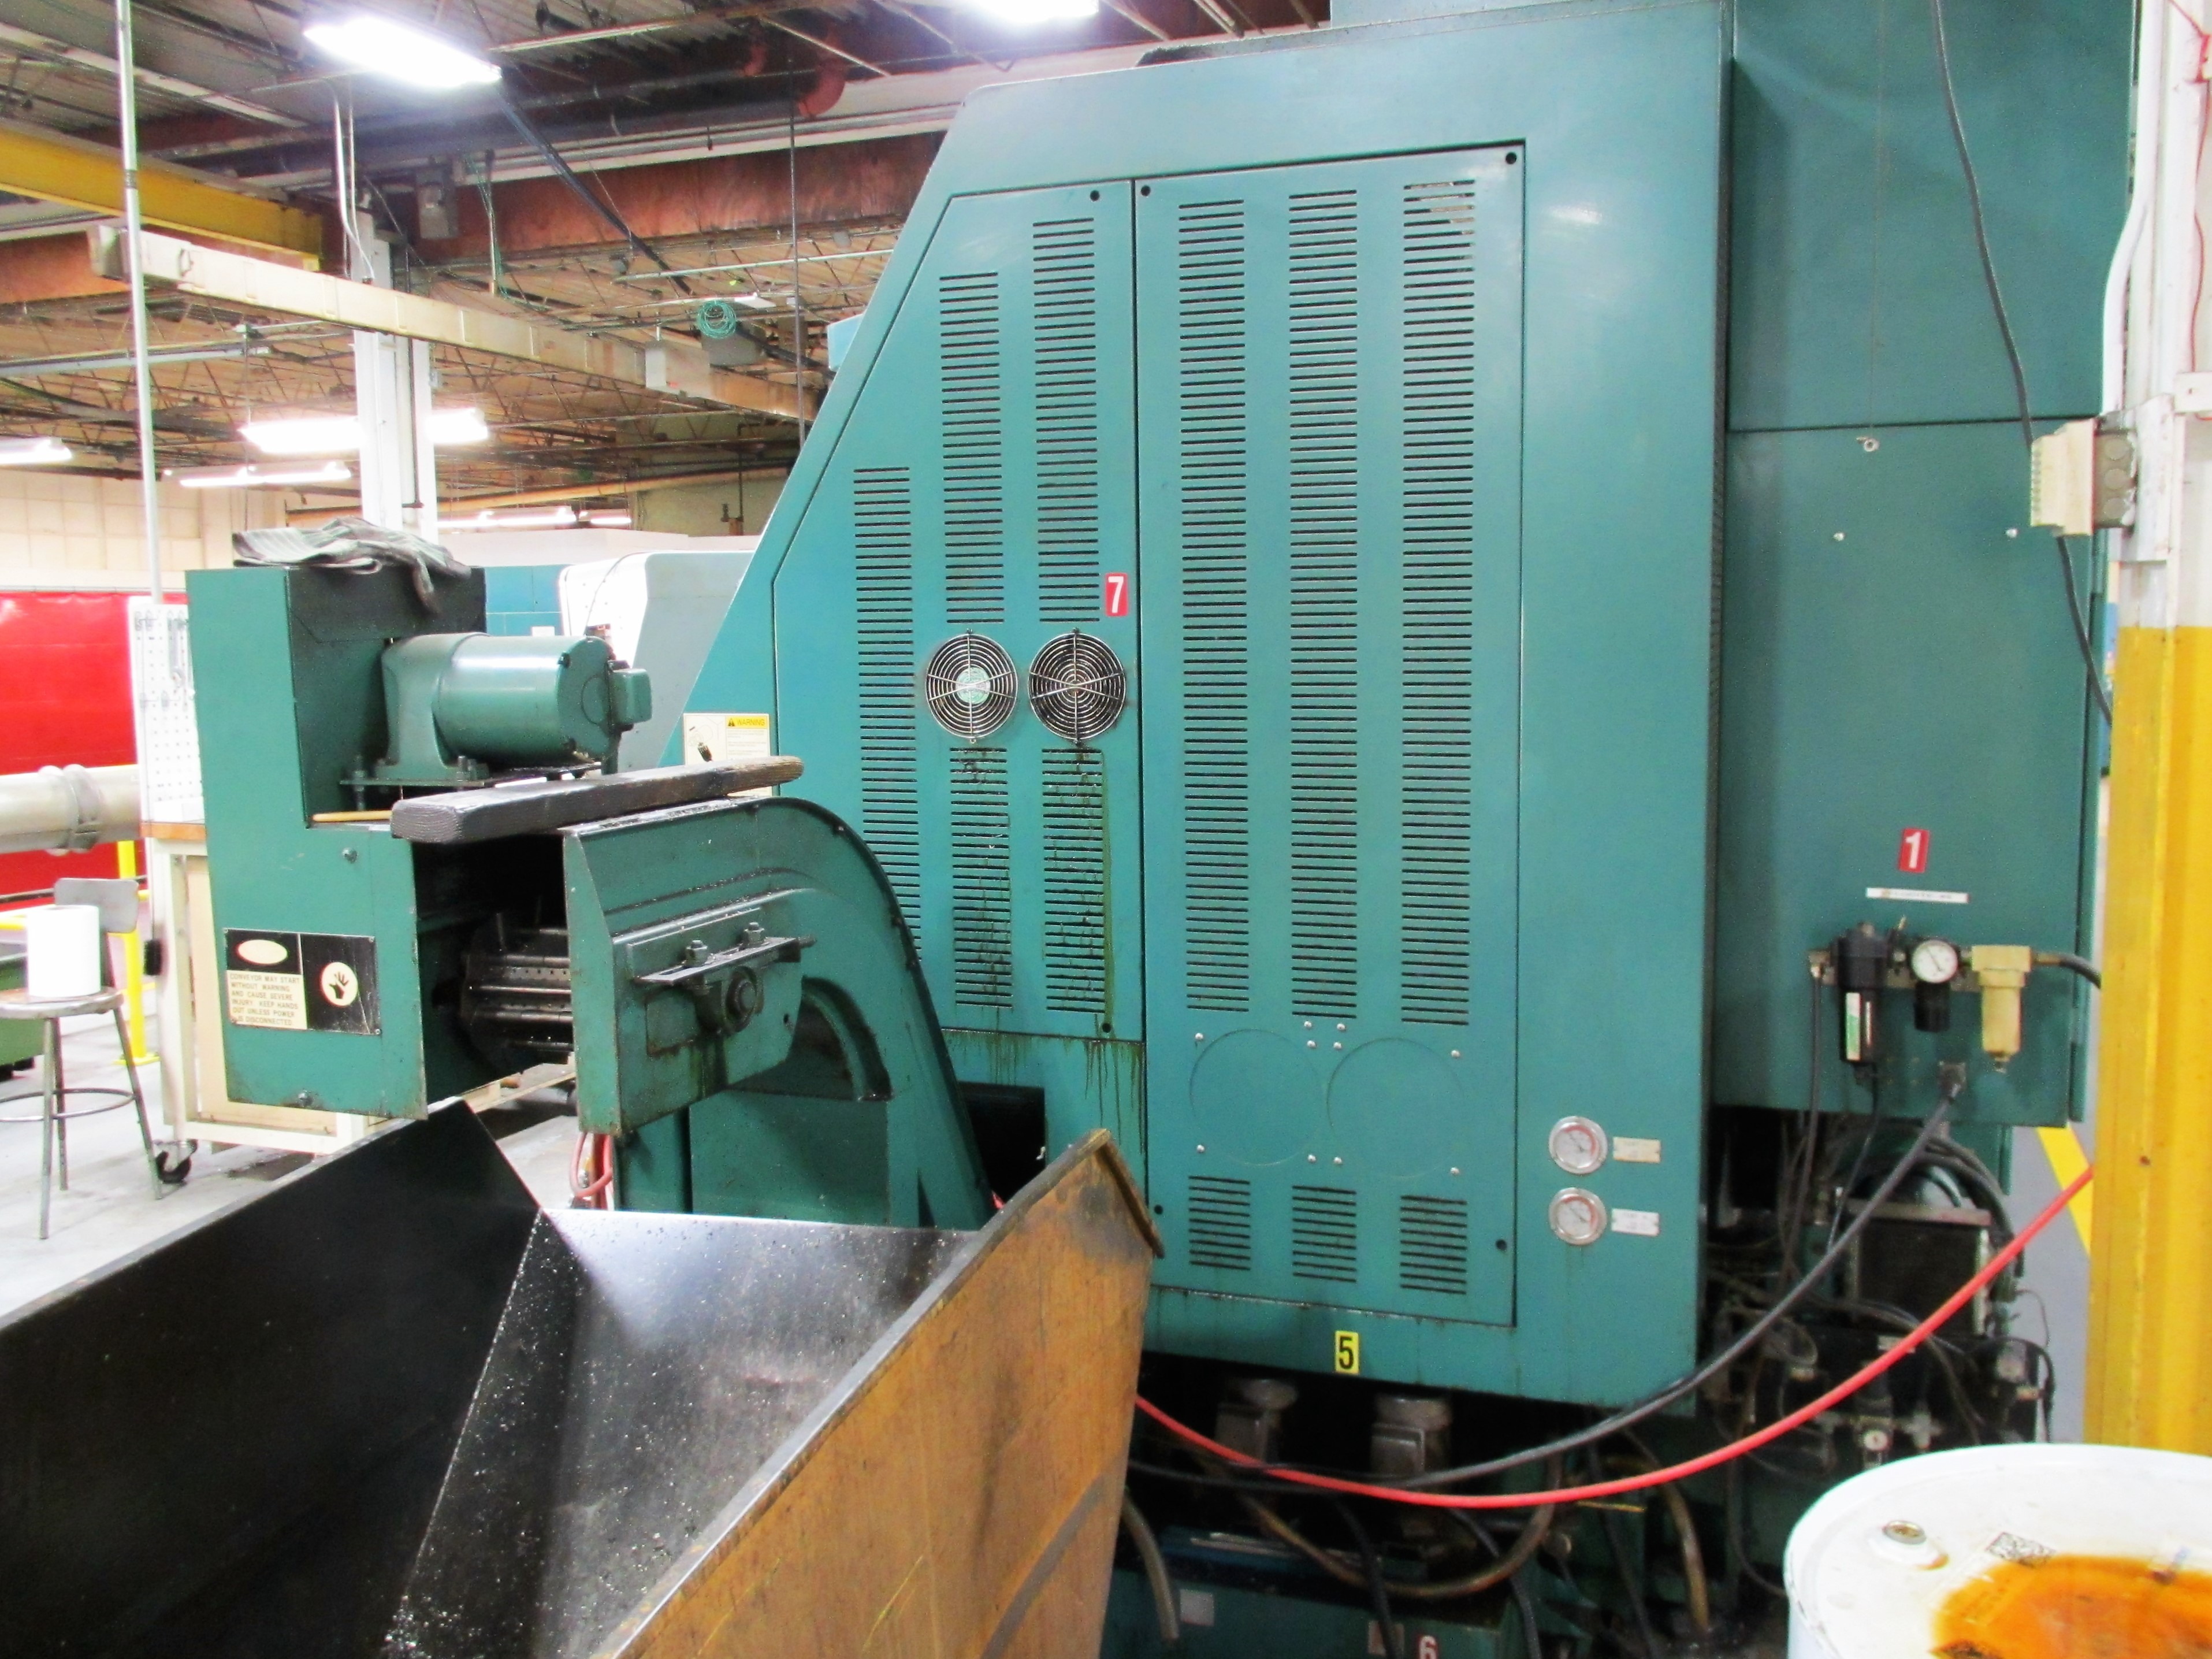 NAKAMURA TOME TW-30MM 7-AXIS CNC TWIN SPINDLE TURNING CENTER - Image 13 of 21